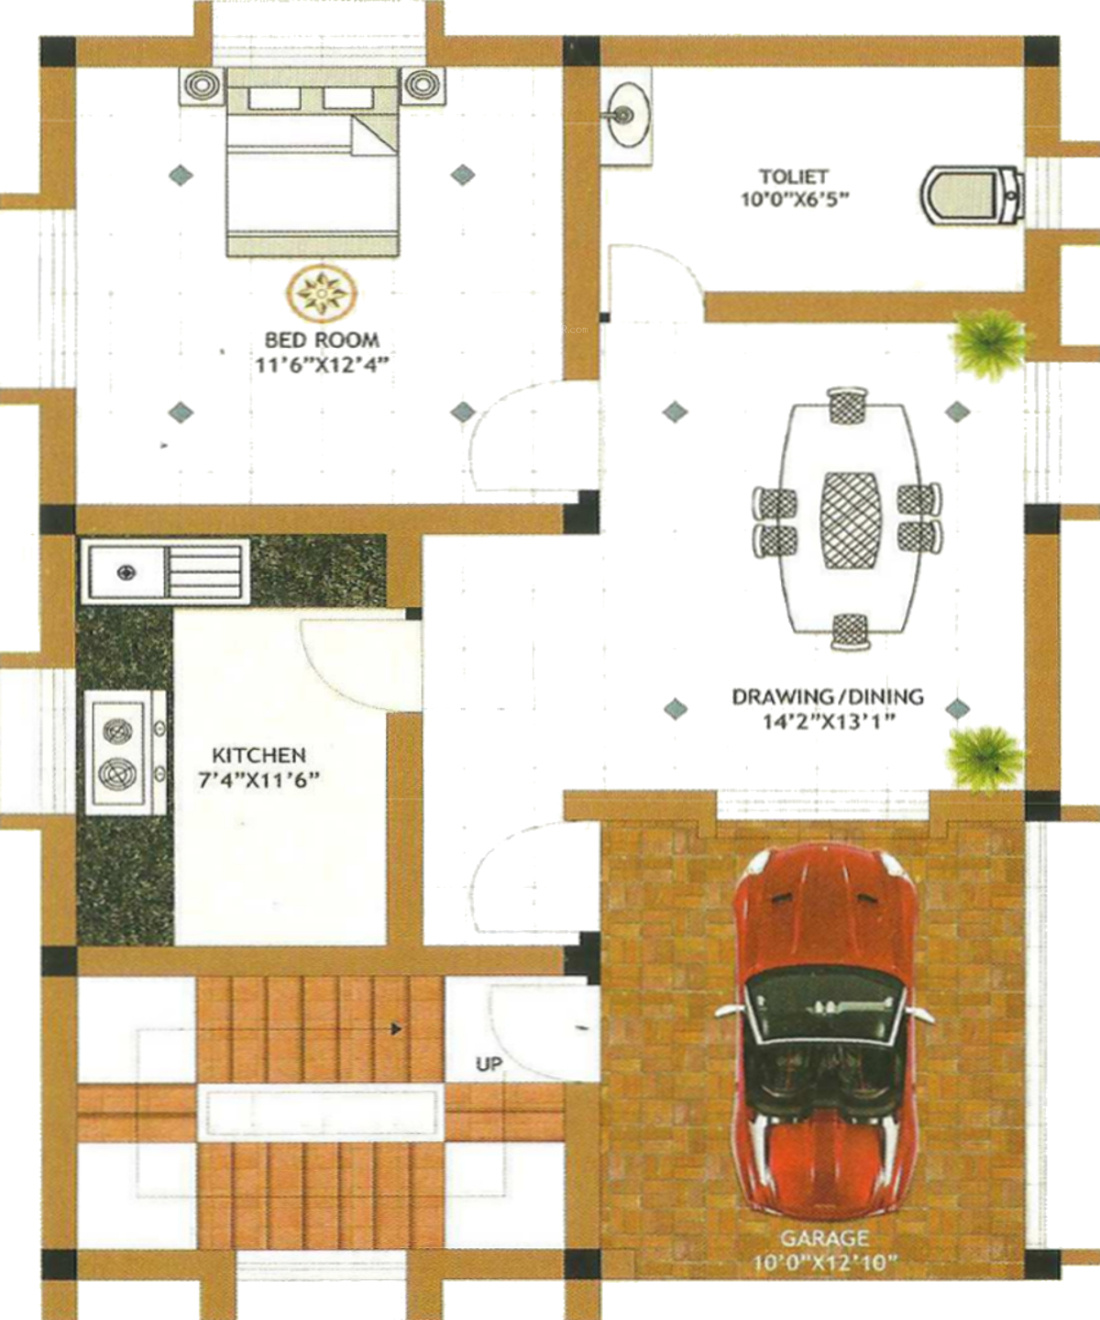 Satya multiplex pvt ltd raghunath enclave in rasulgarh for Multiplex floor plans